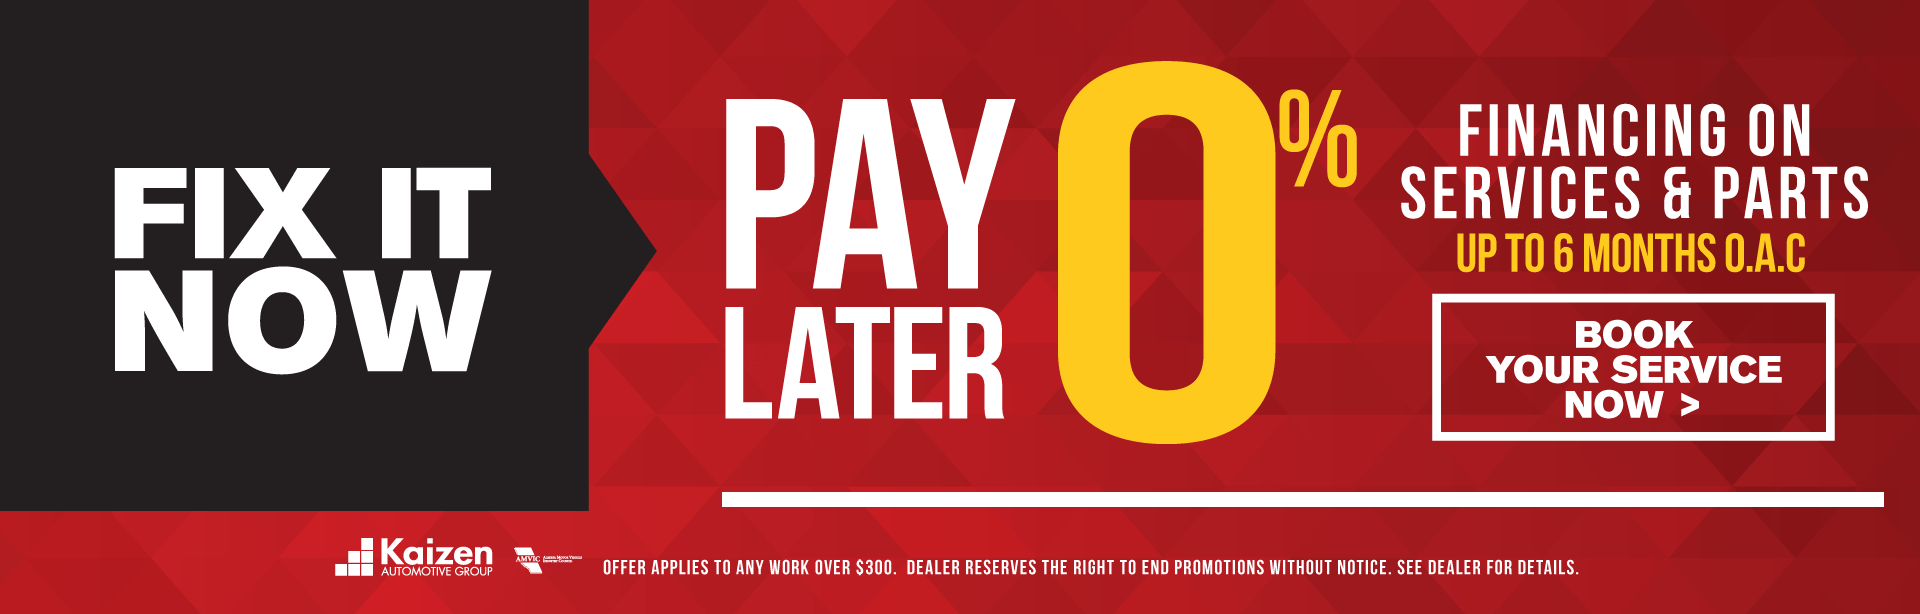 Pay Later 0%